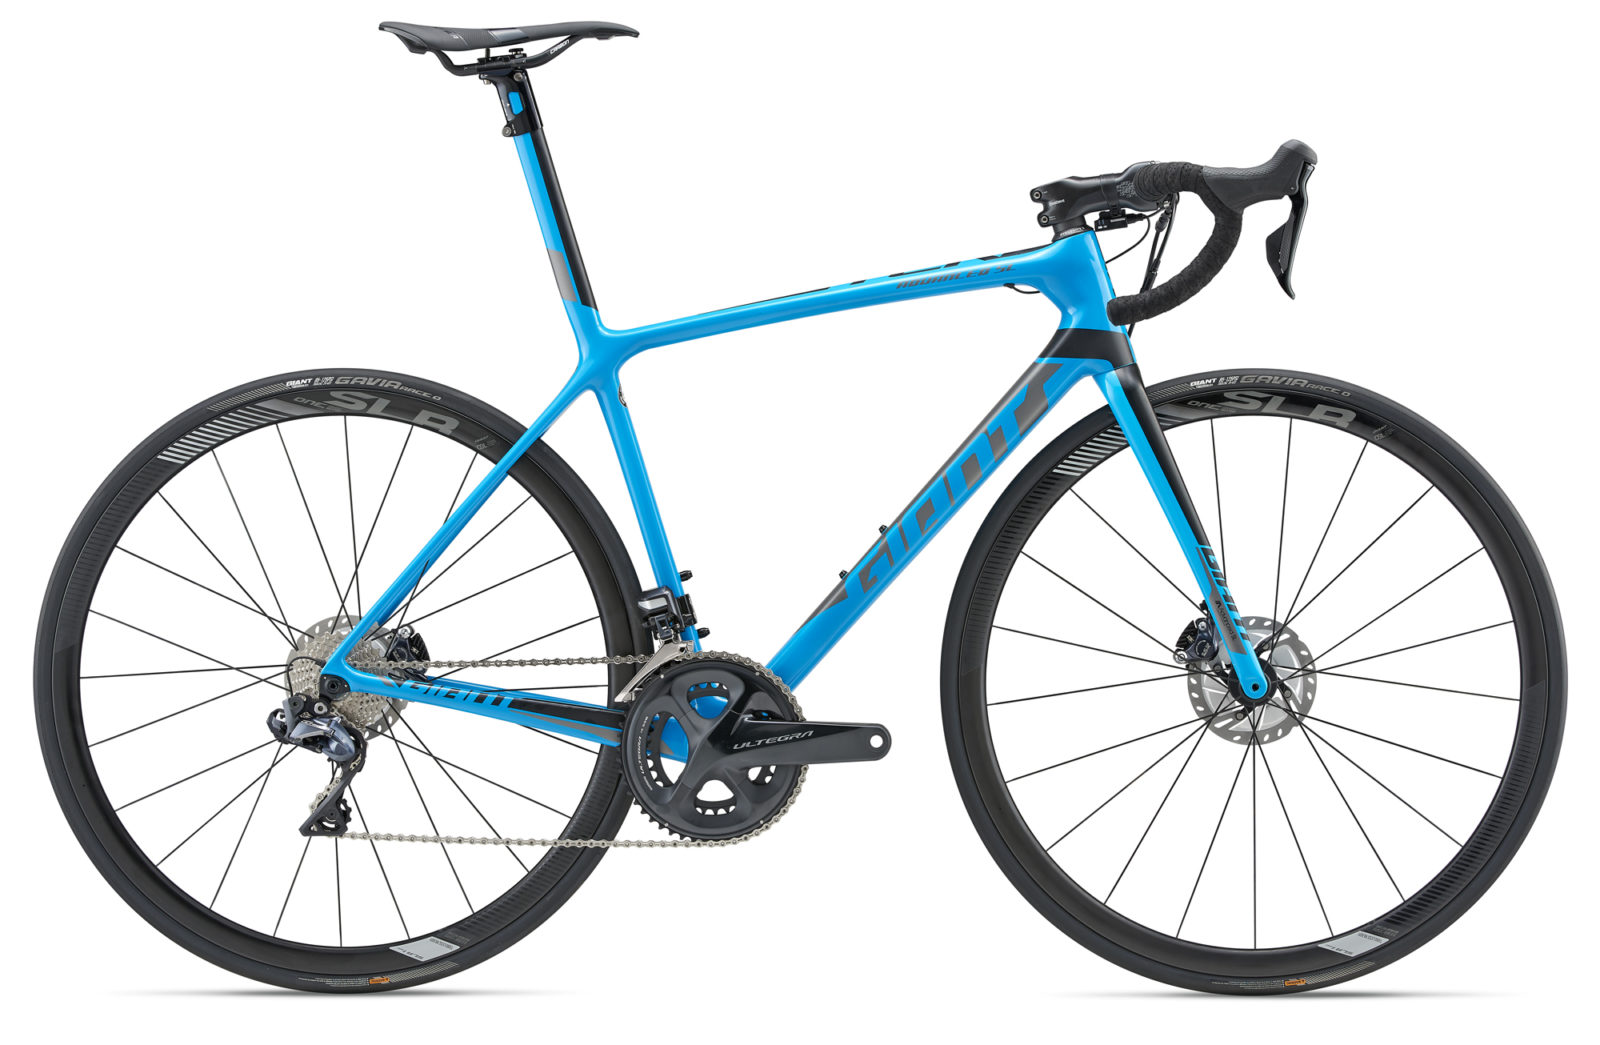 Giant Rennrad TCR advanced SL1 Disc 2018